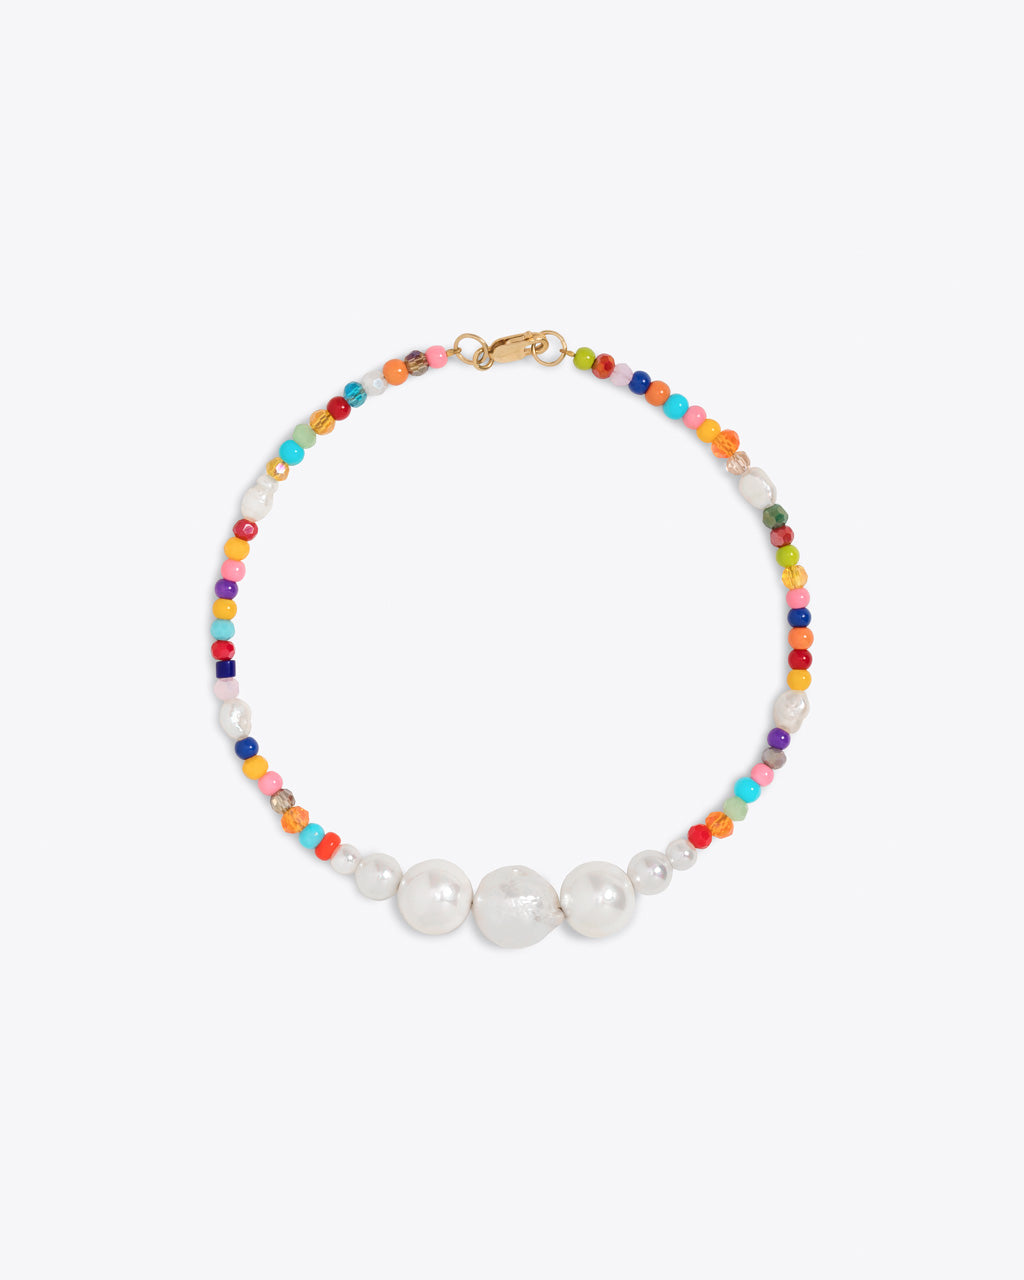 multi colored beaded ankle bracelet with baroque cultured pearls and a gold filled clasp